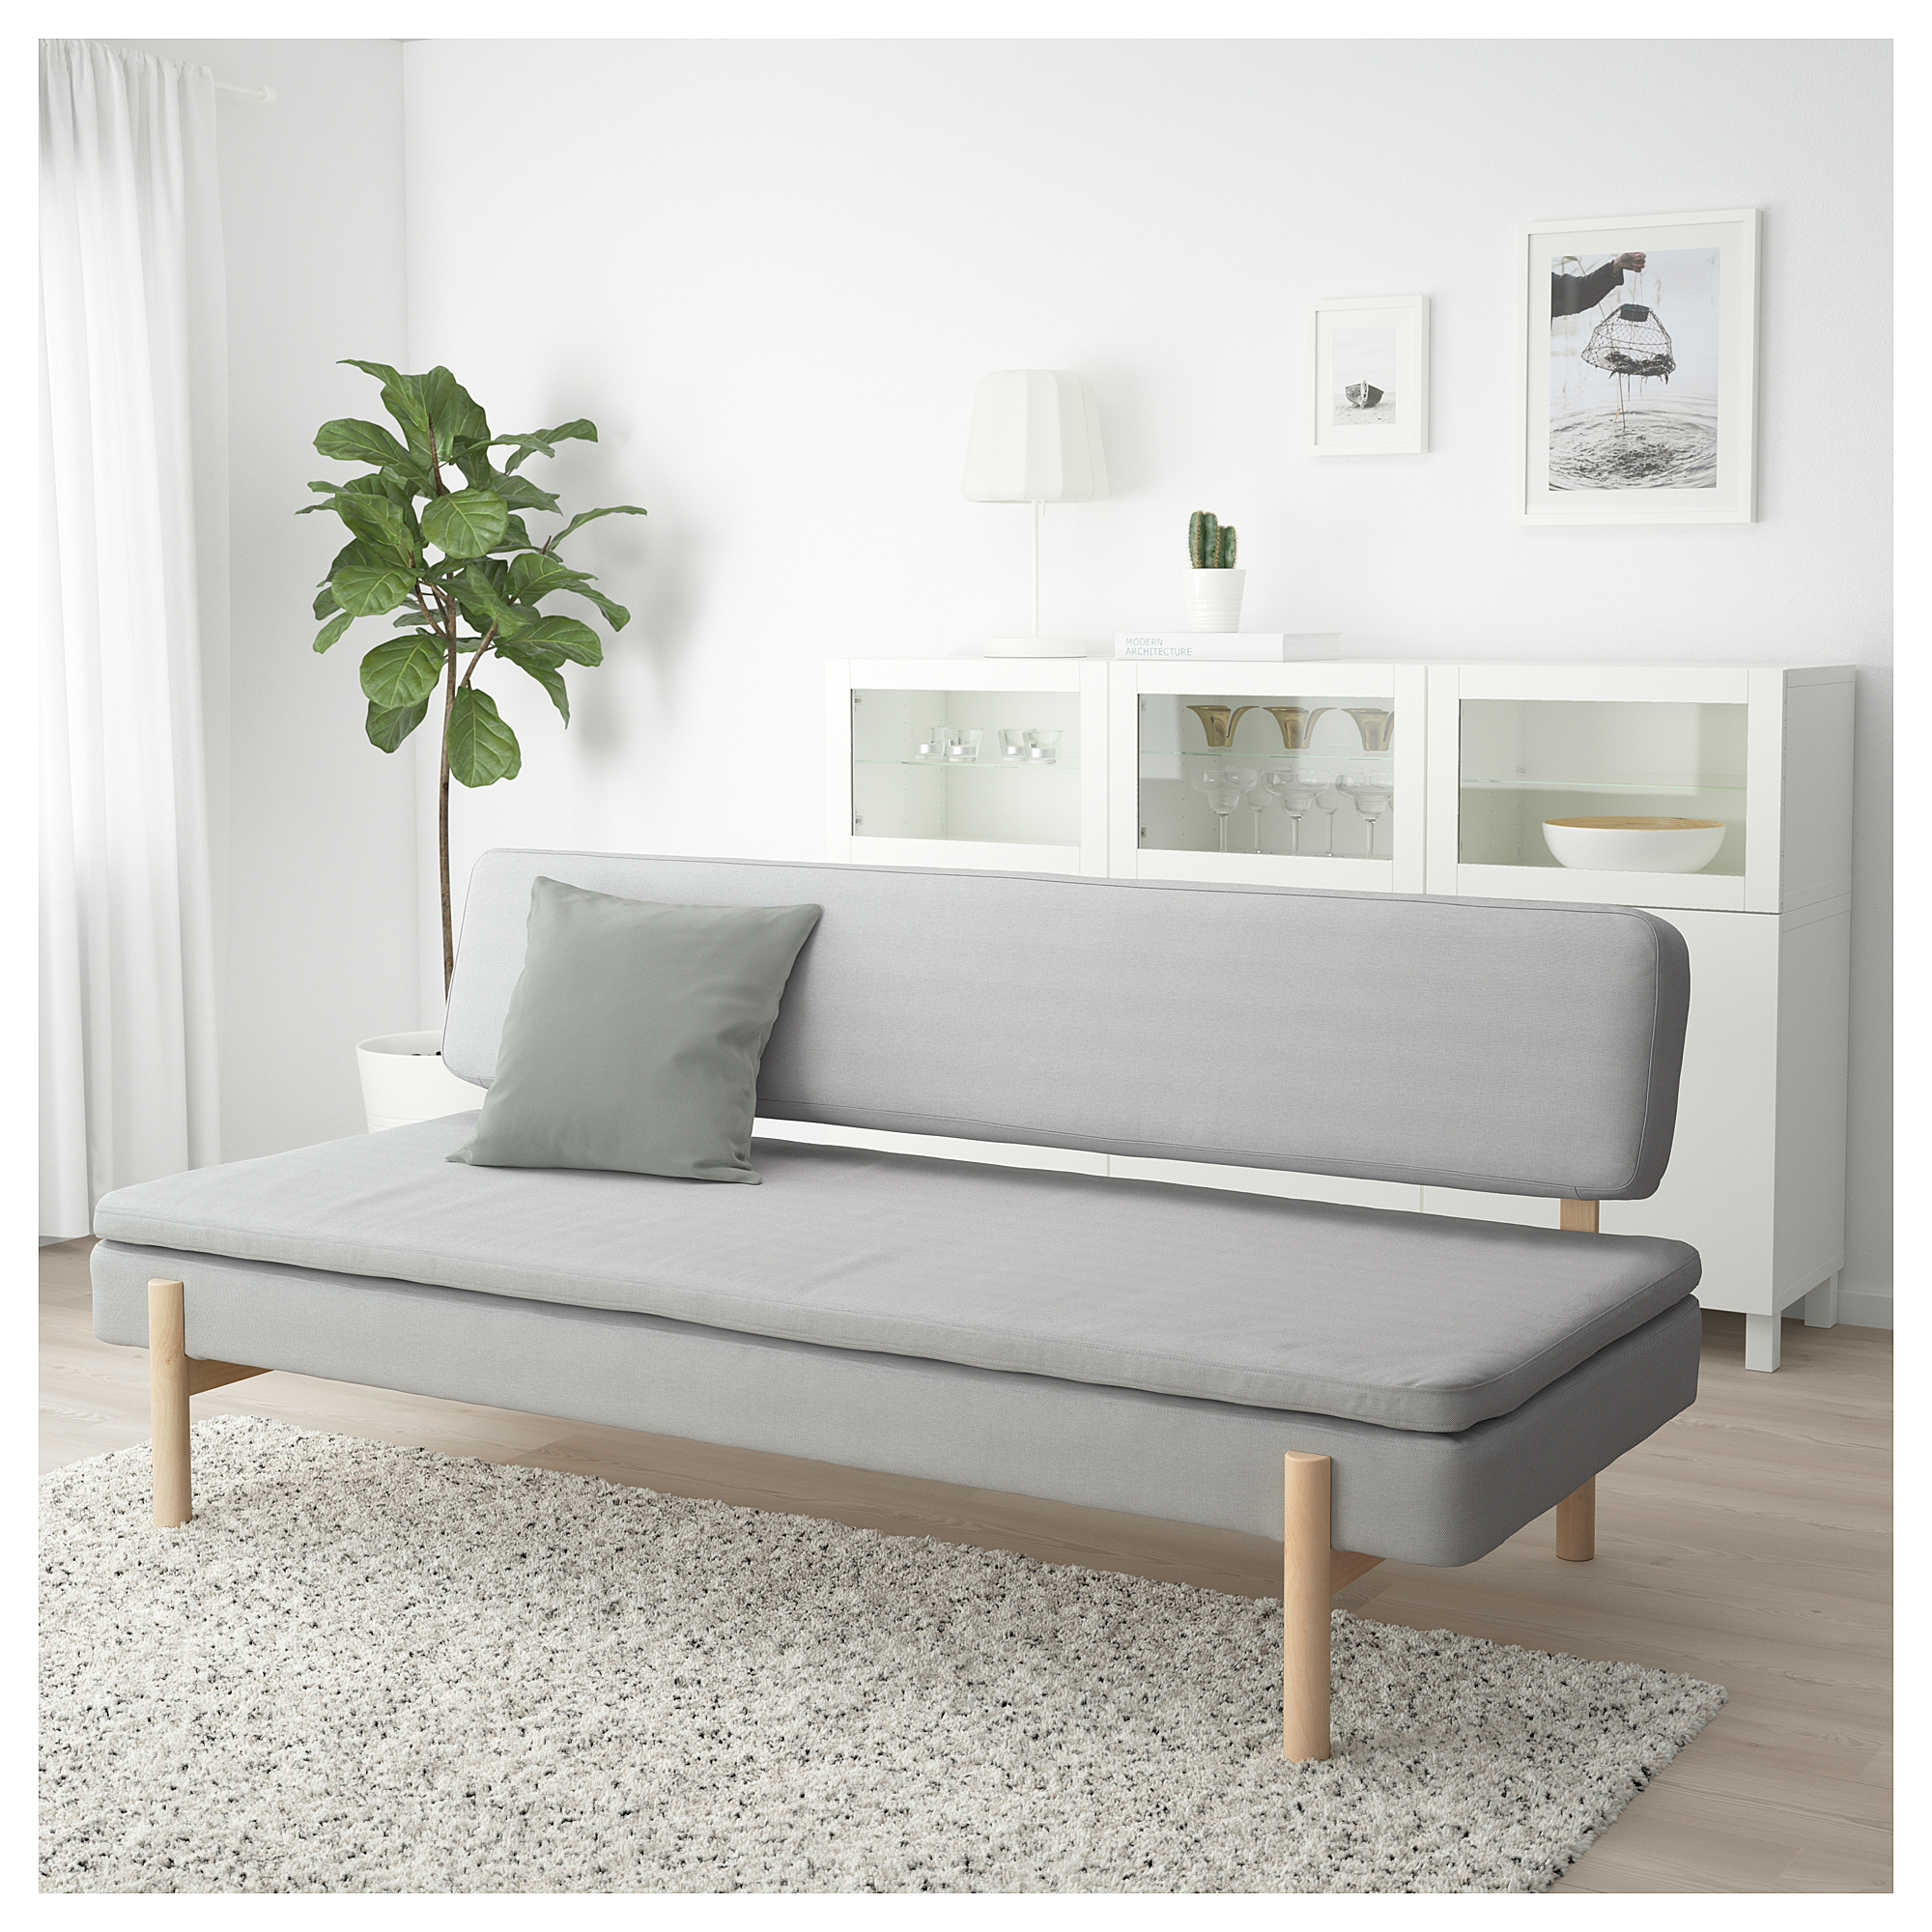 Miraculous Ypperlig 3 Seat Sofa Bed Orrsta Light Grey Ikea Hong Kong Gmtry Best Dining Table And Chair Ideas Images Gmtryco